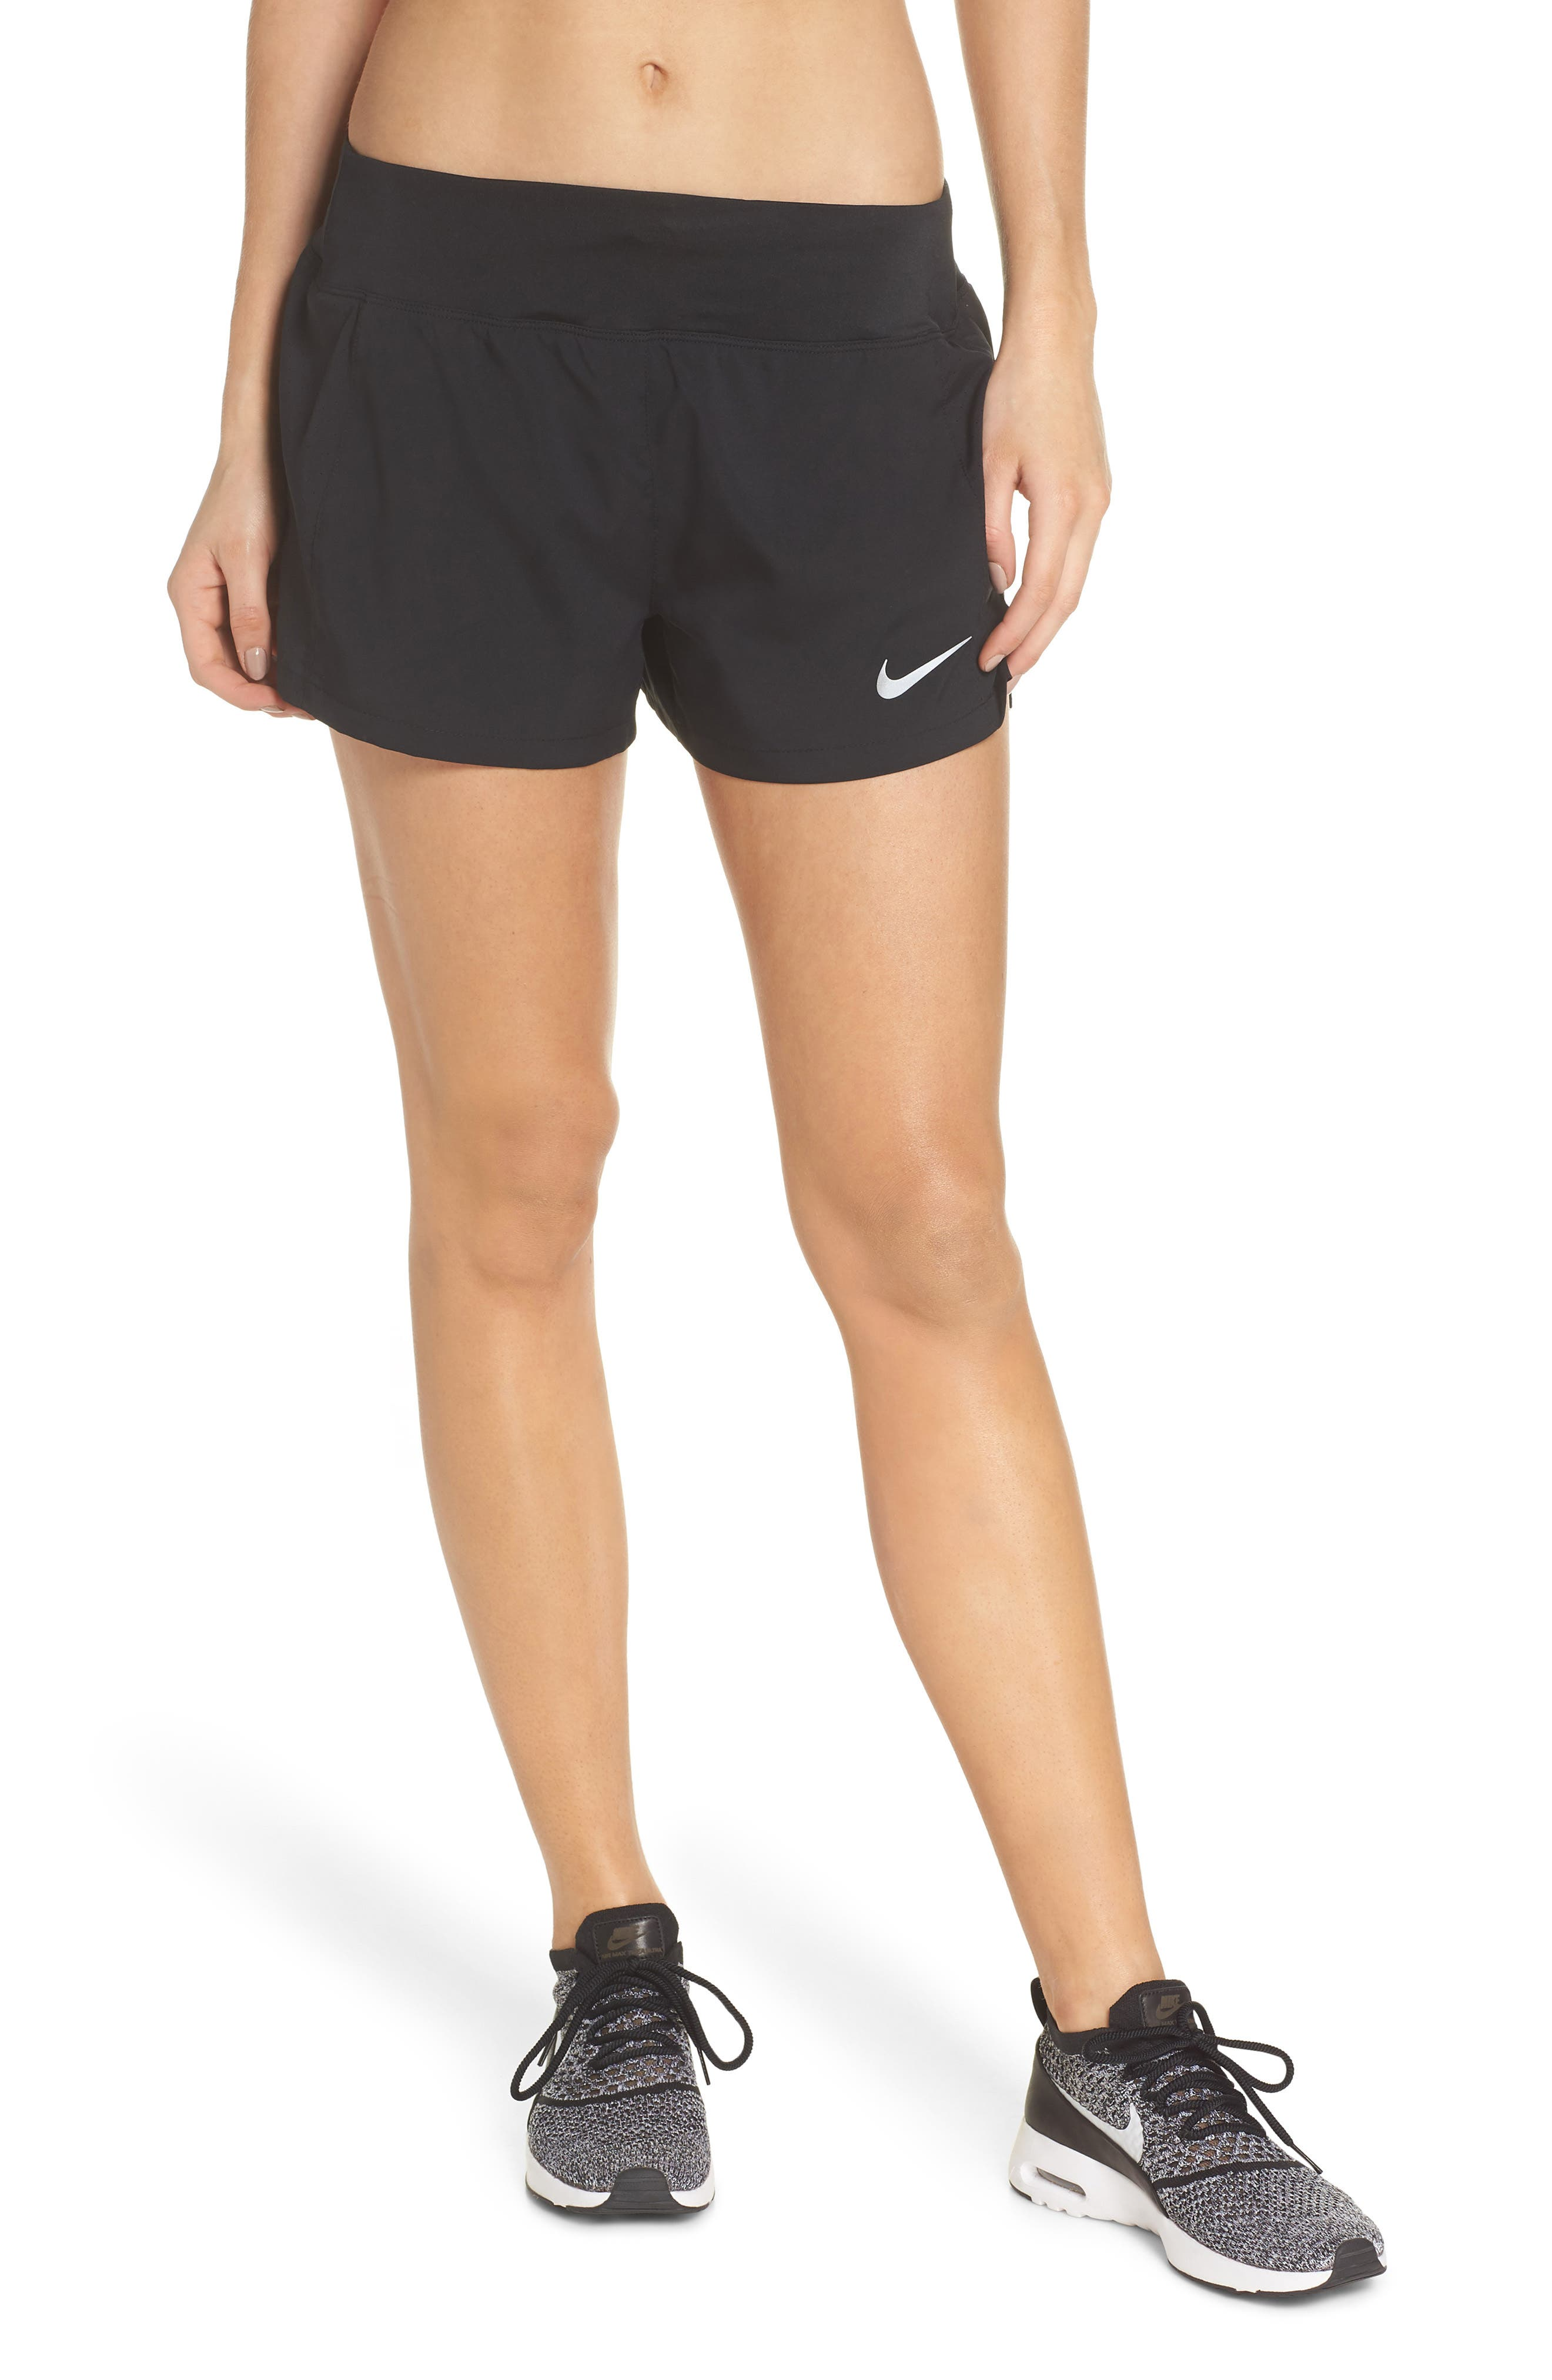 Dry Eclipse Running Shorts,                         Main,                         color, Black